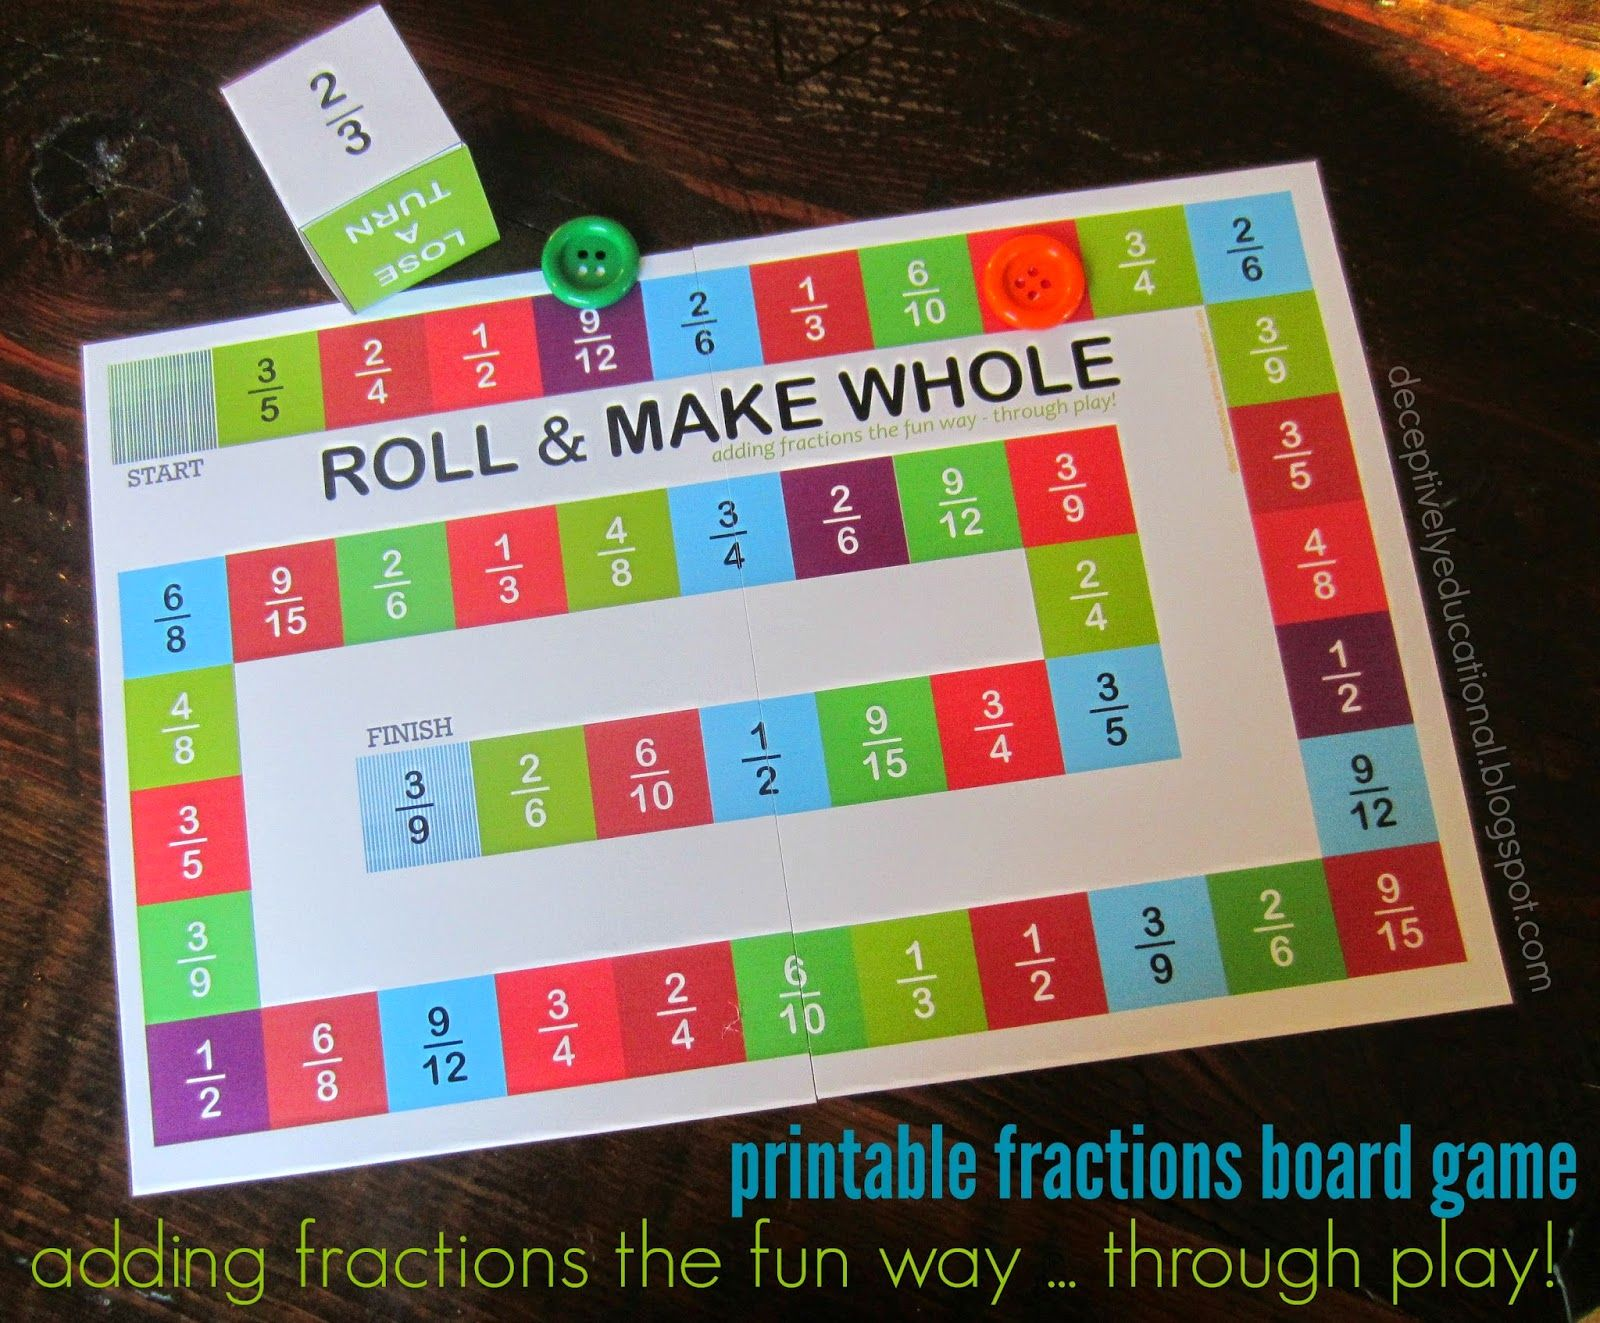 Roll and Make Whole Adding Fractions Board Game Relentlessly